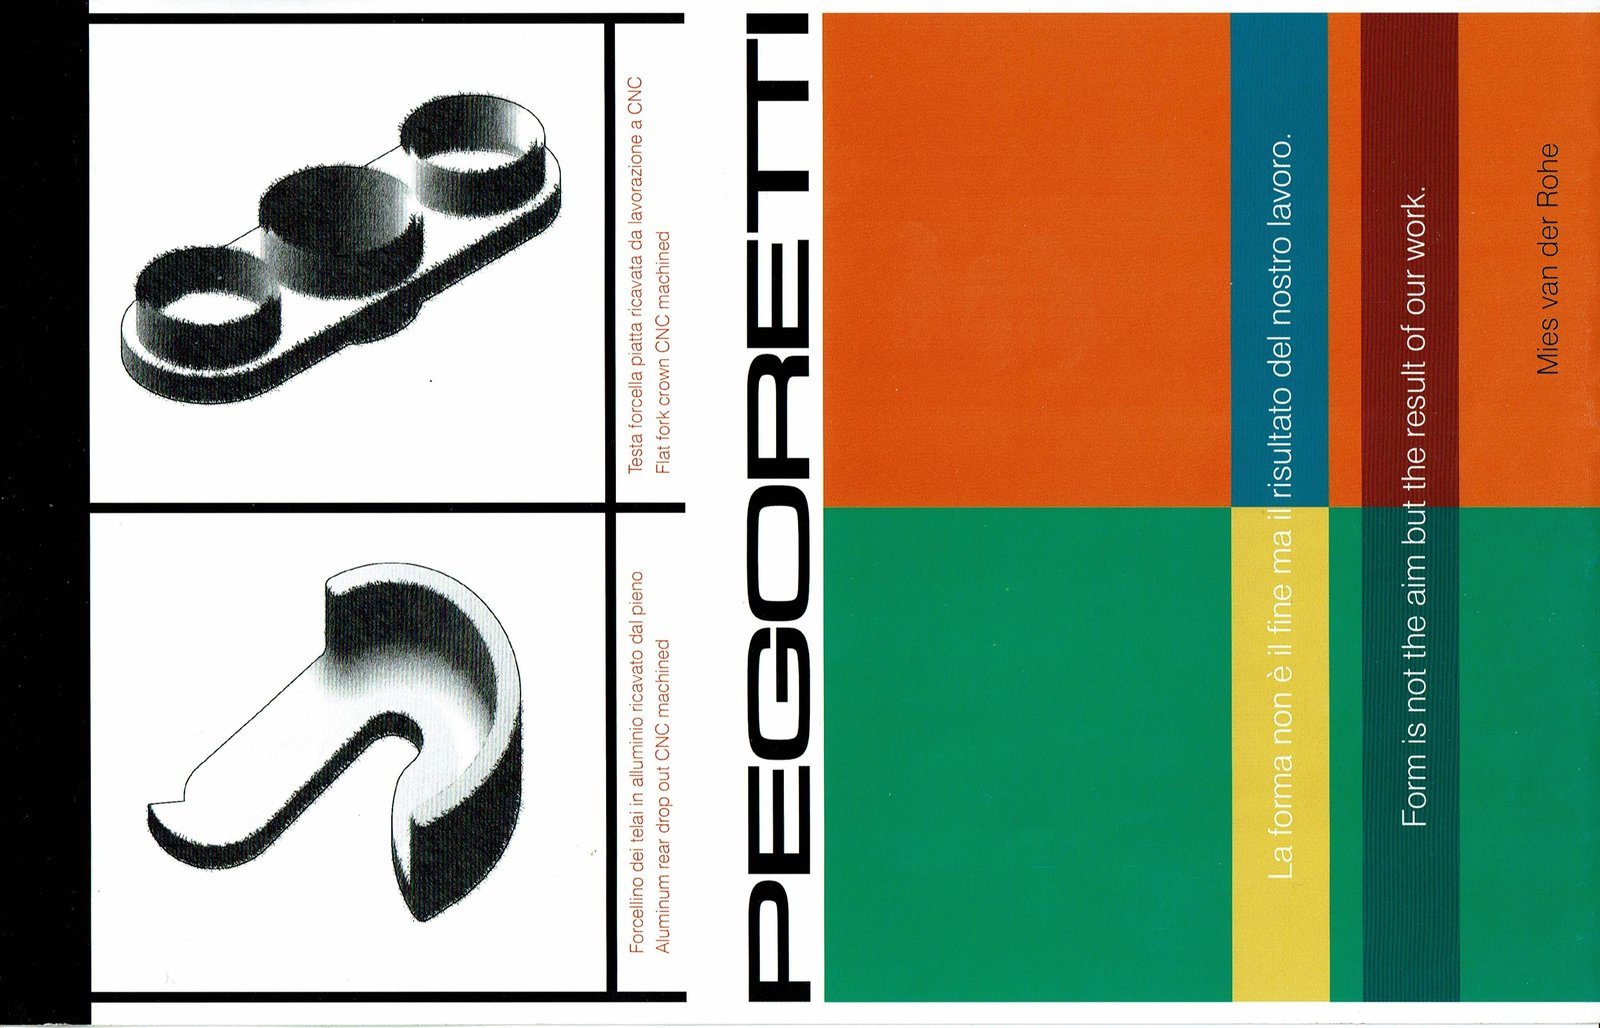 Cover of the Pegoretti 2002? catalog